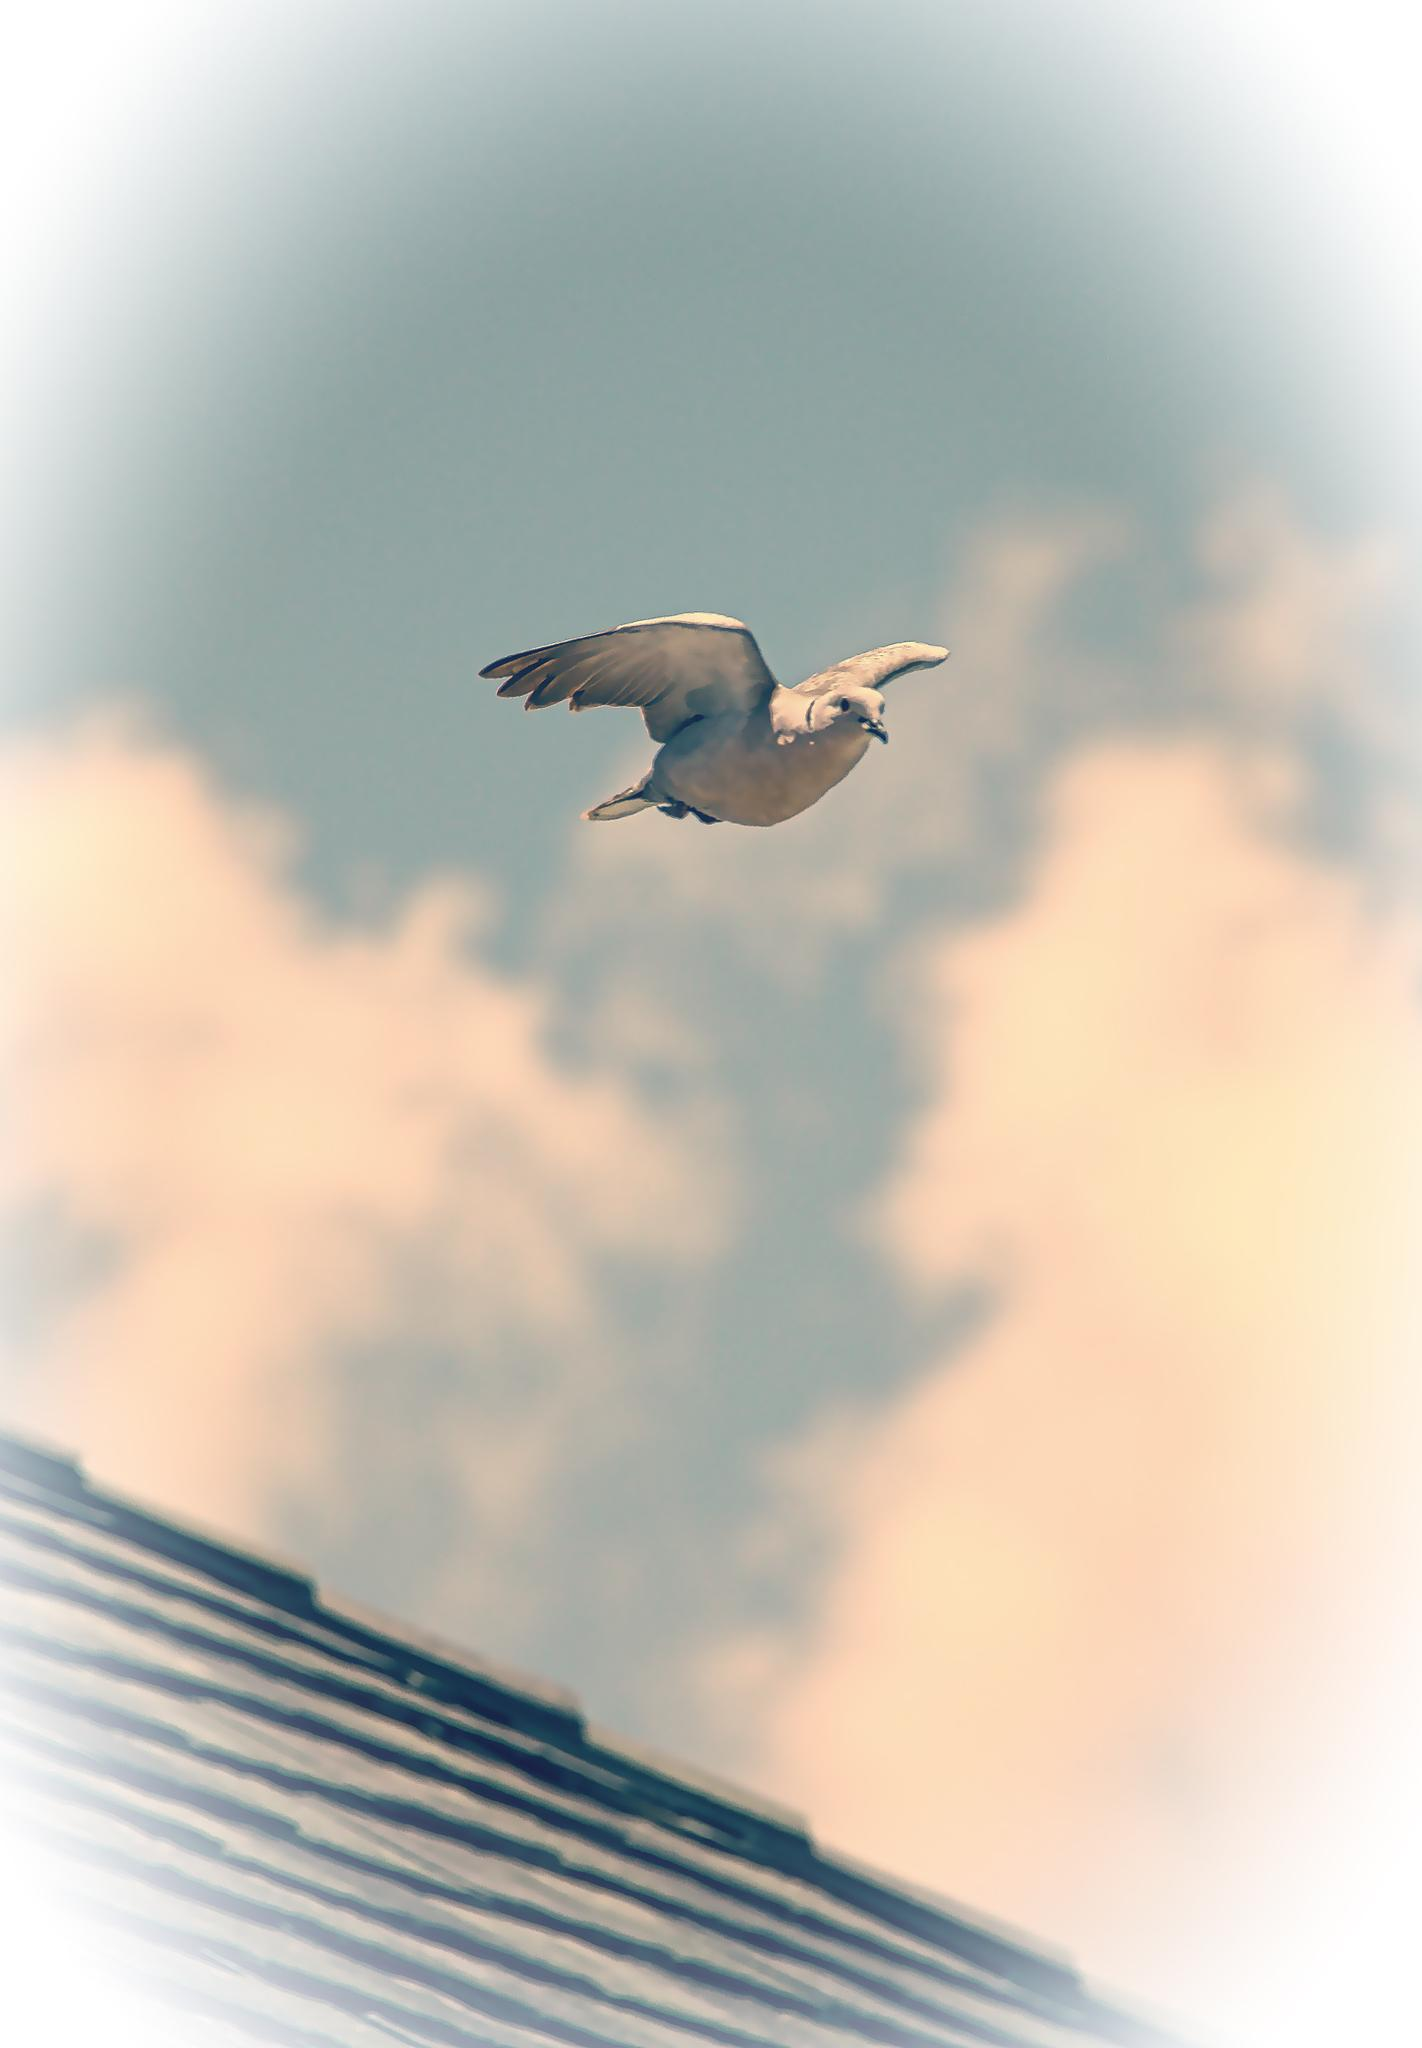 Heavenly Dove in Flight by William Pittman